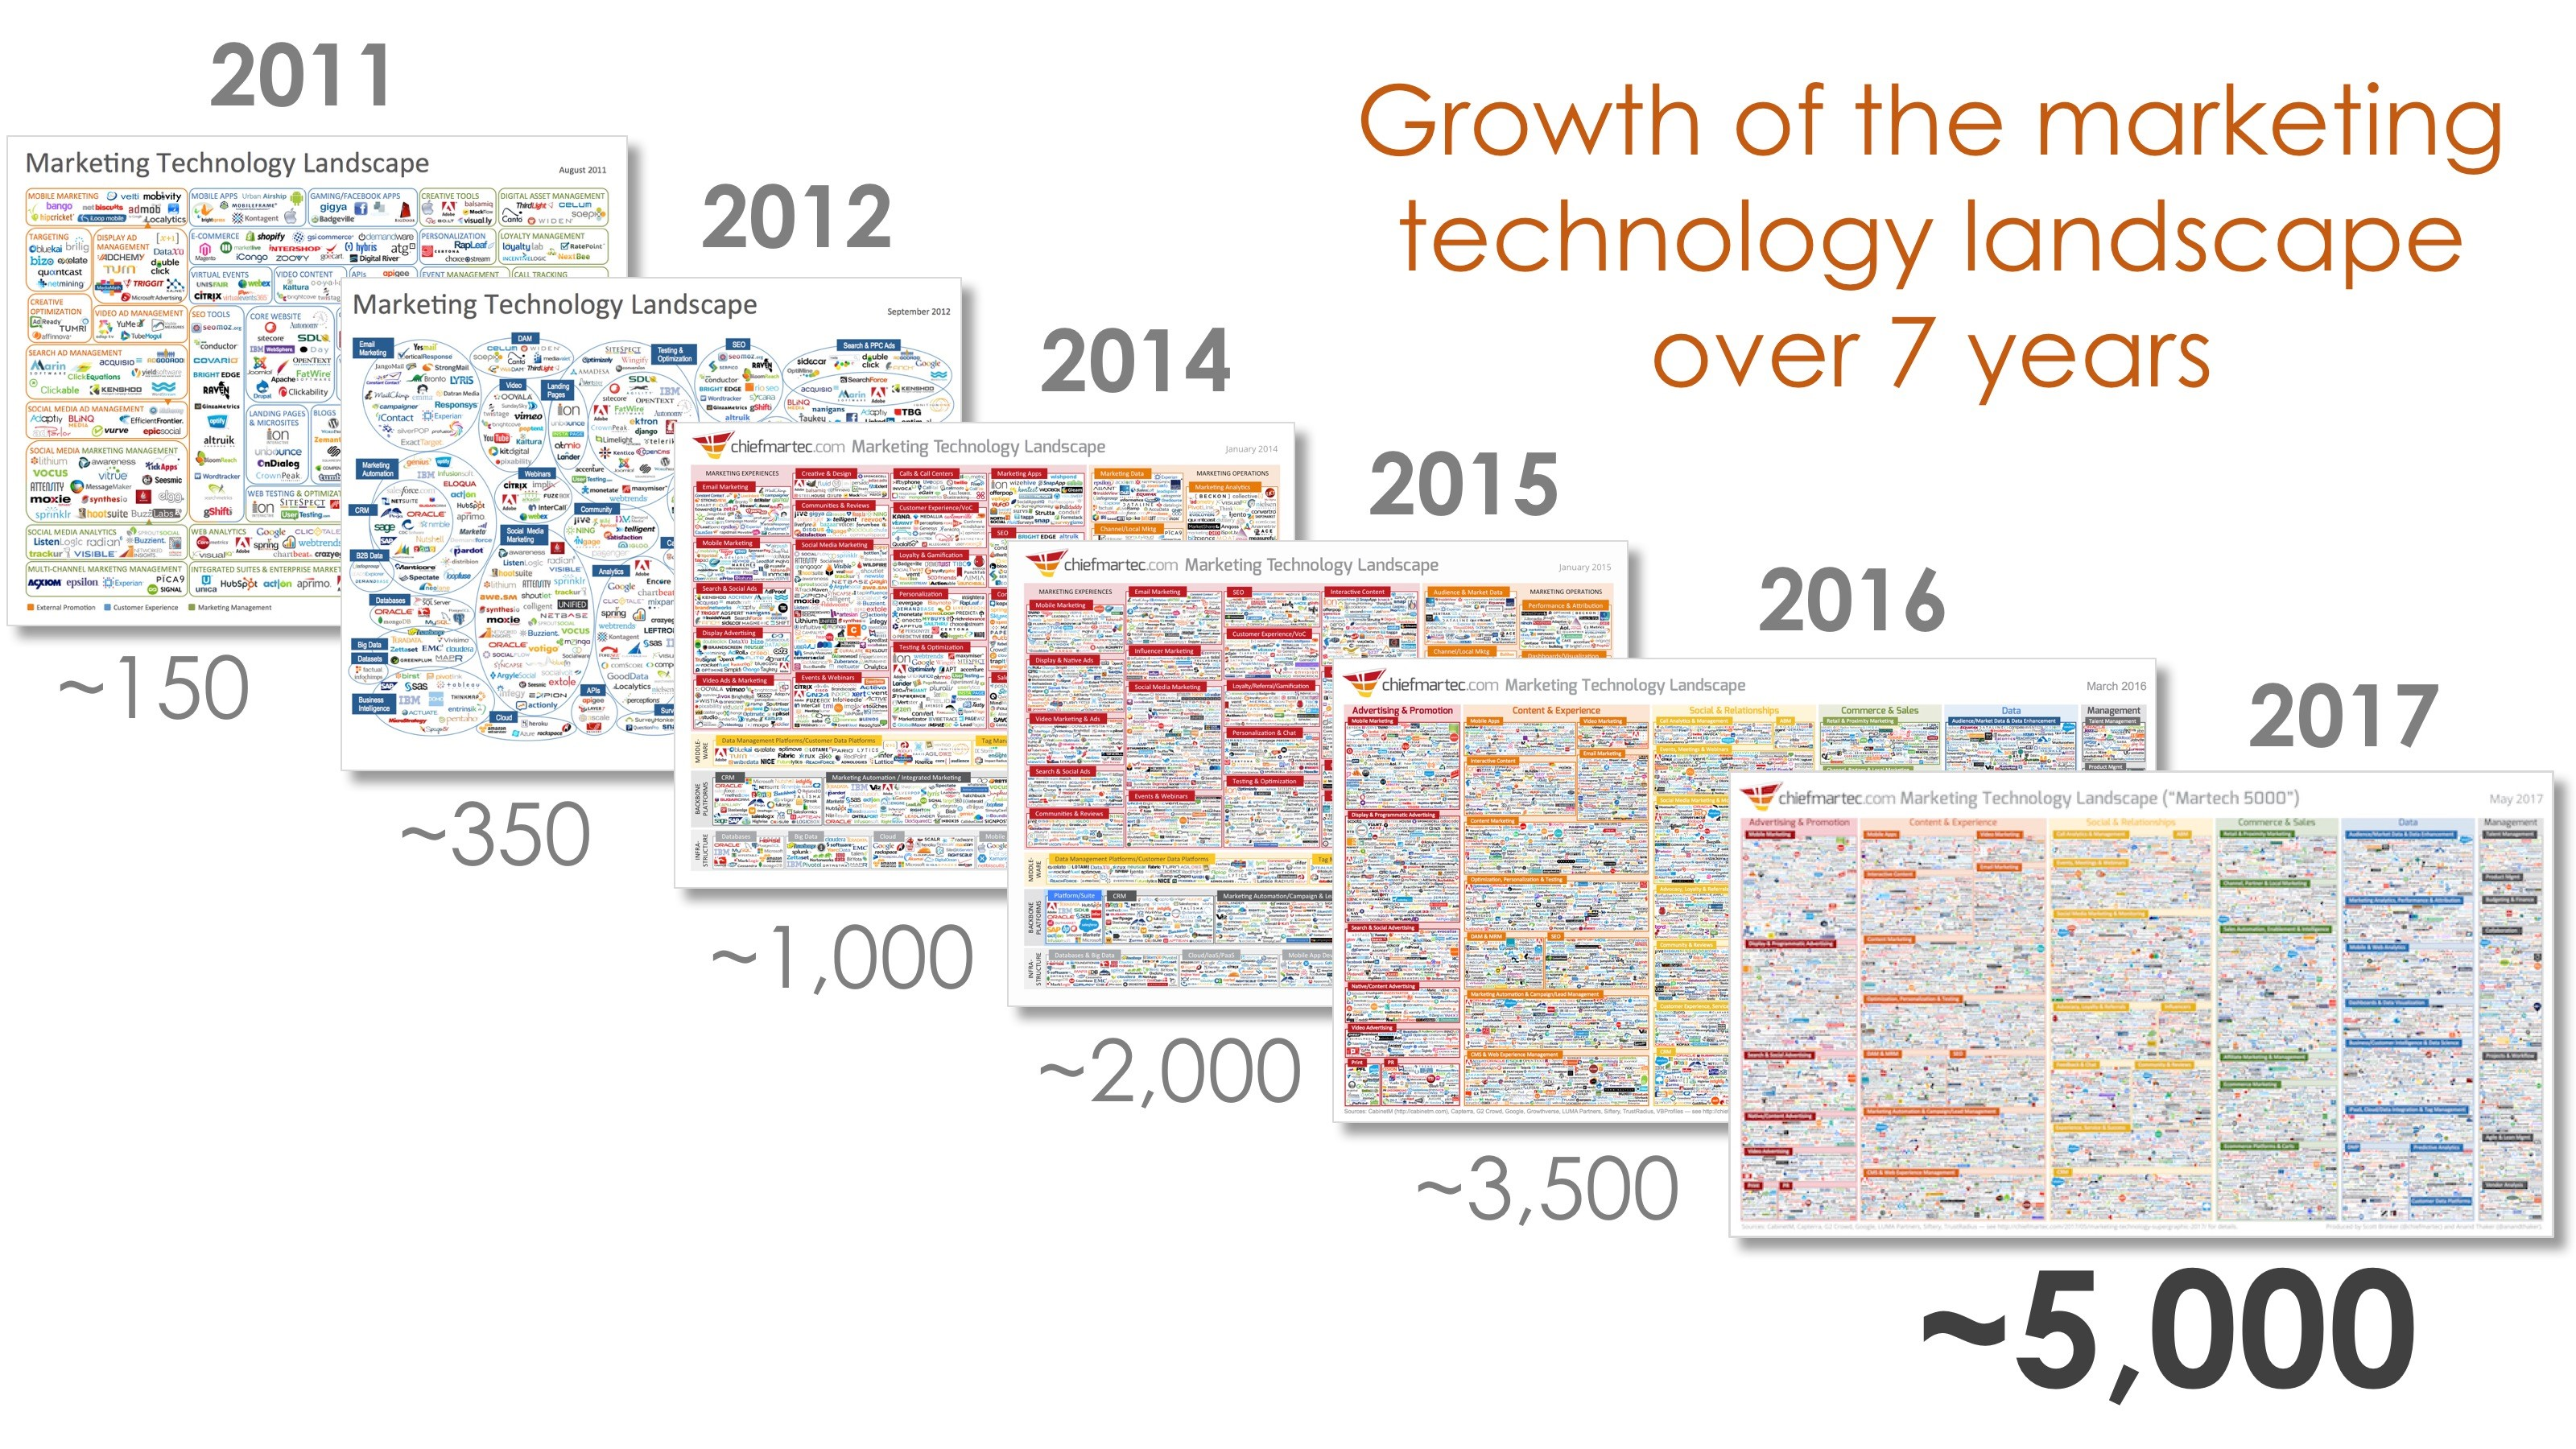 Growth of the marketing technology landscape from 150 tools to over 5000